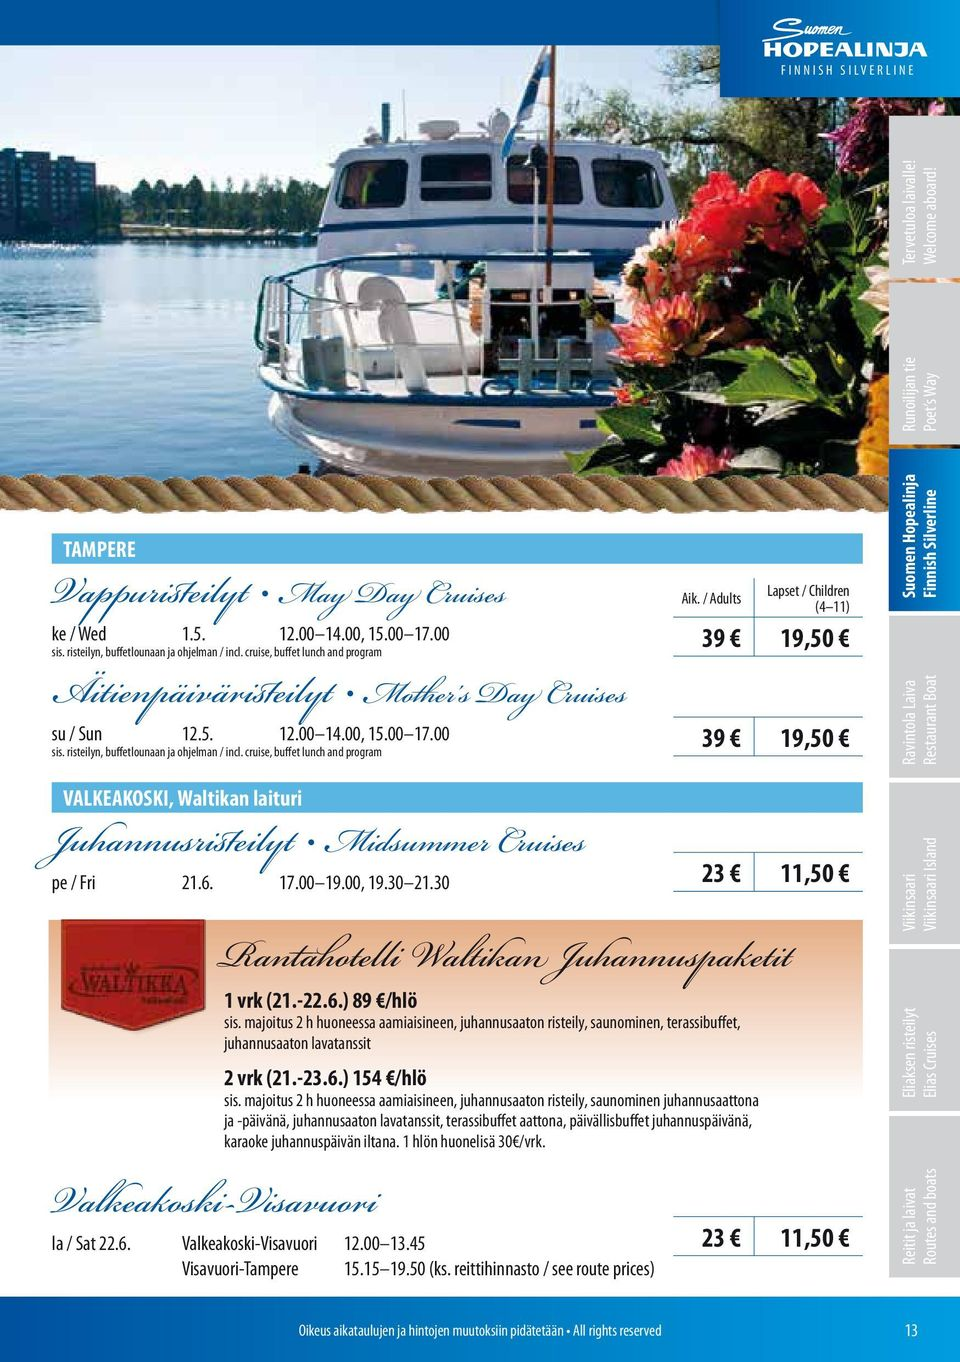 00 17.00 39 19,50 sis. risteilyn, buffetlounaan ja ohjelman / incl. cruise, buffet lunch and program VALKEAKOSKI, Waltikan laituri Juhannusristeilyt Midsummer Cruises pe / Fri 21.6. 17.00 19.00, 19.